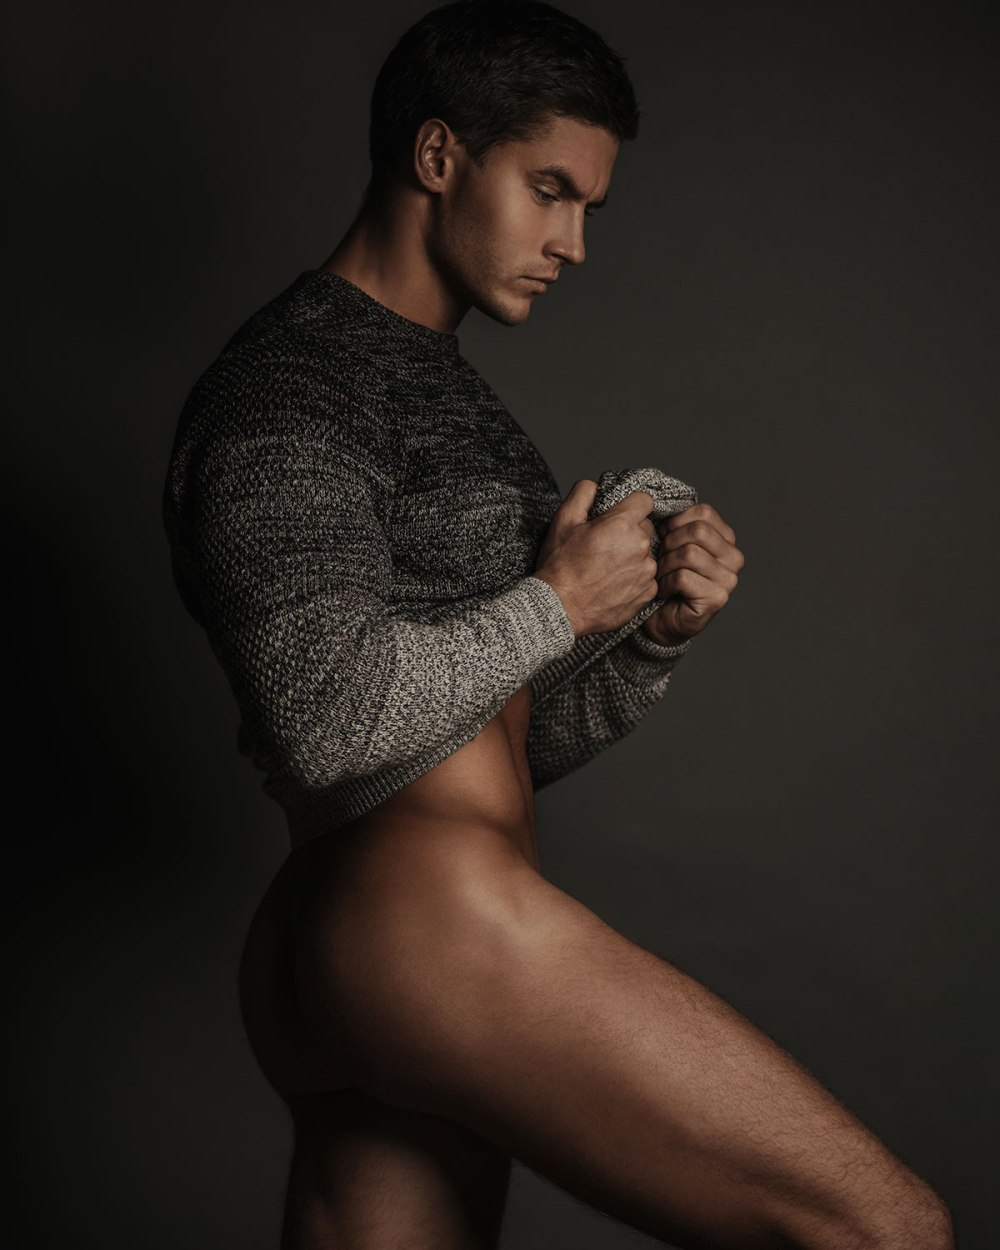 anatoly-goncharov-by-serge-lee-5